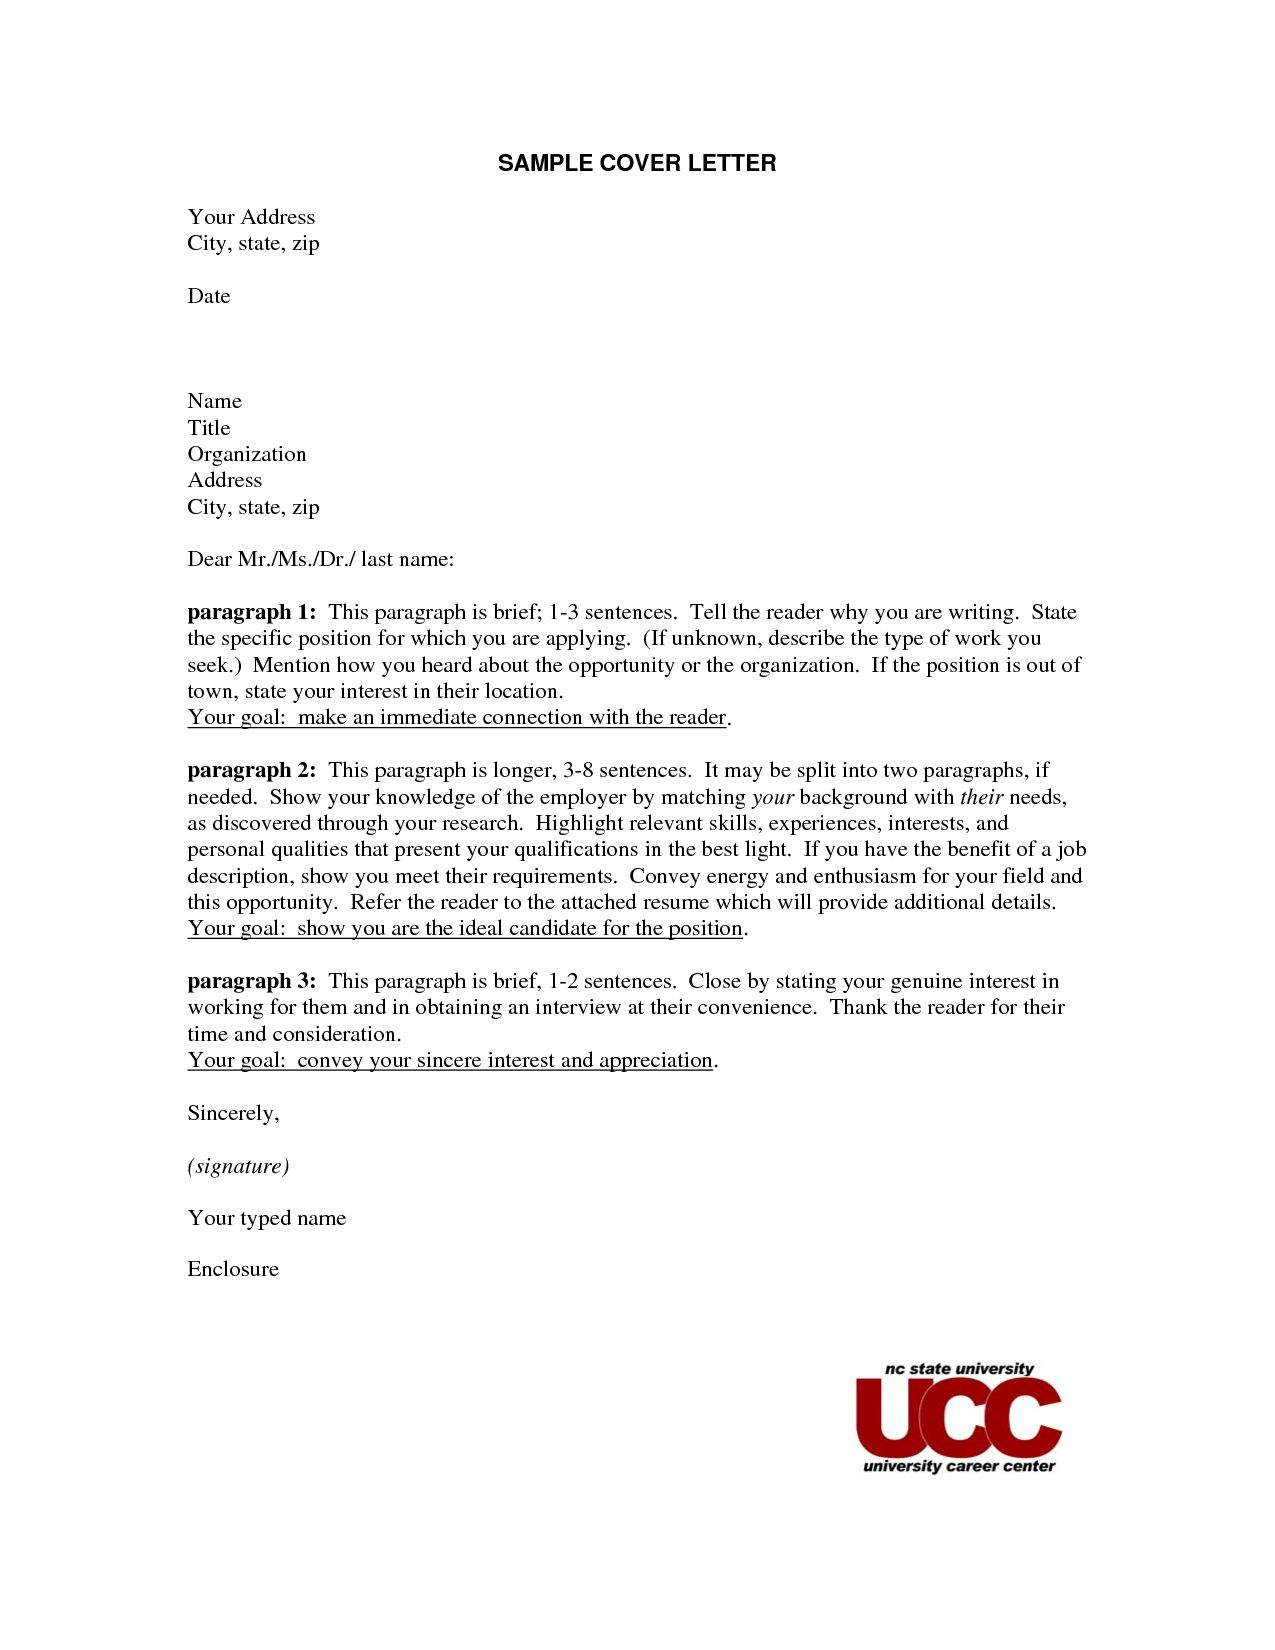 26 how to address a cover letter without a name in 2020